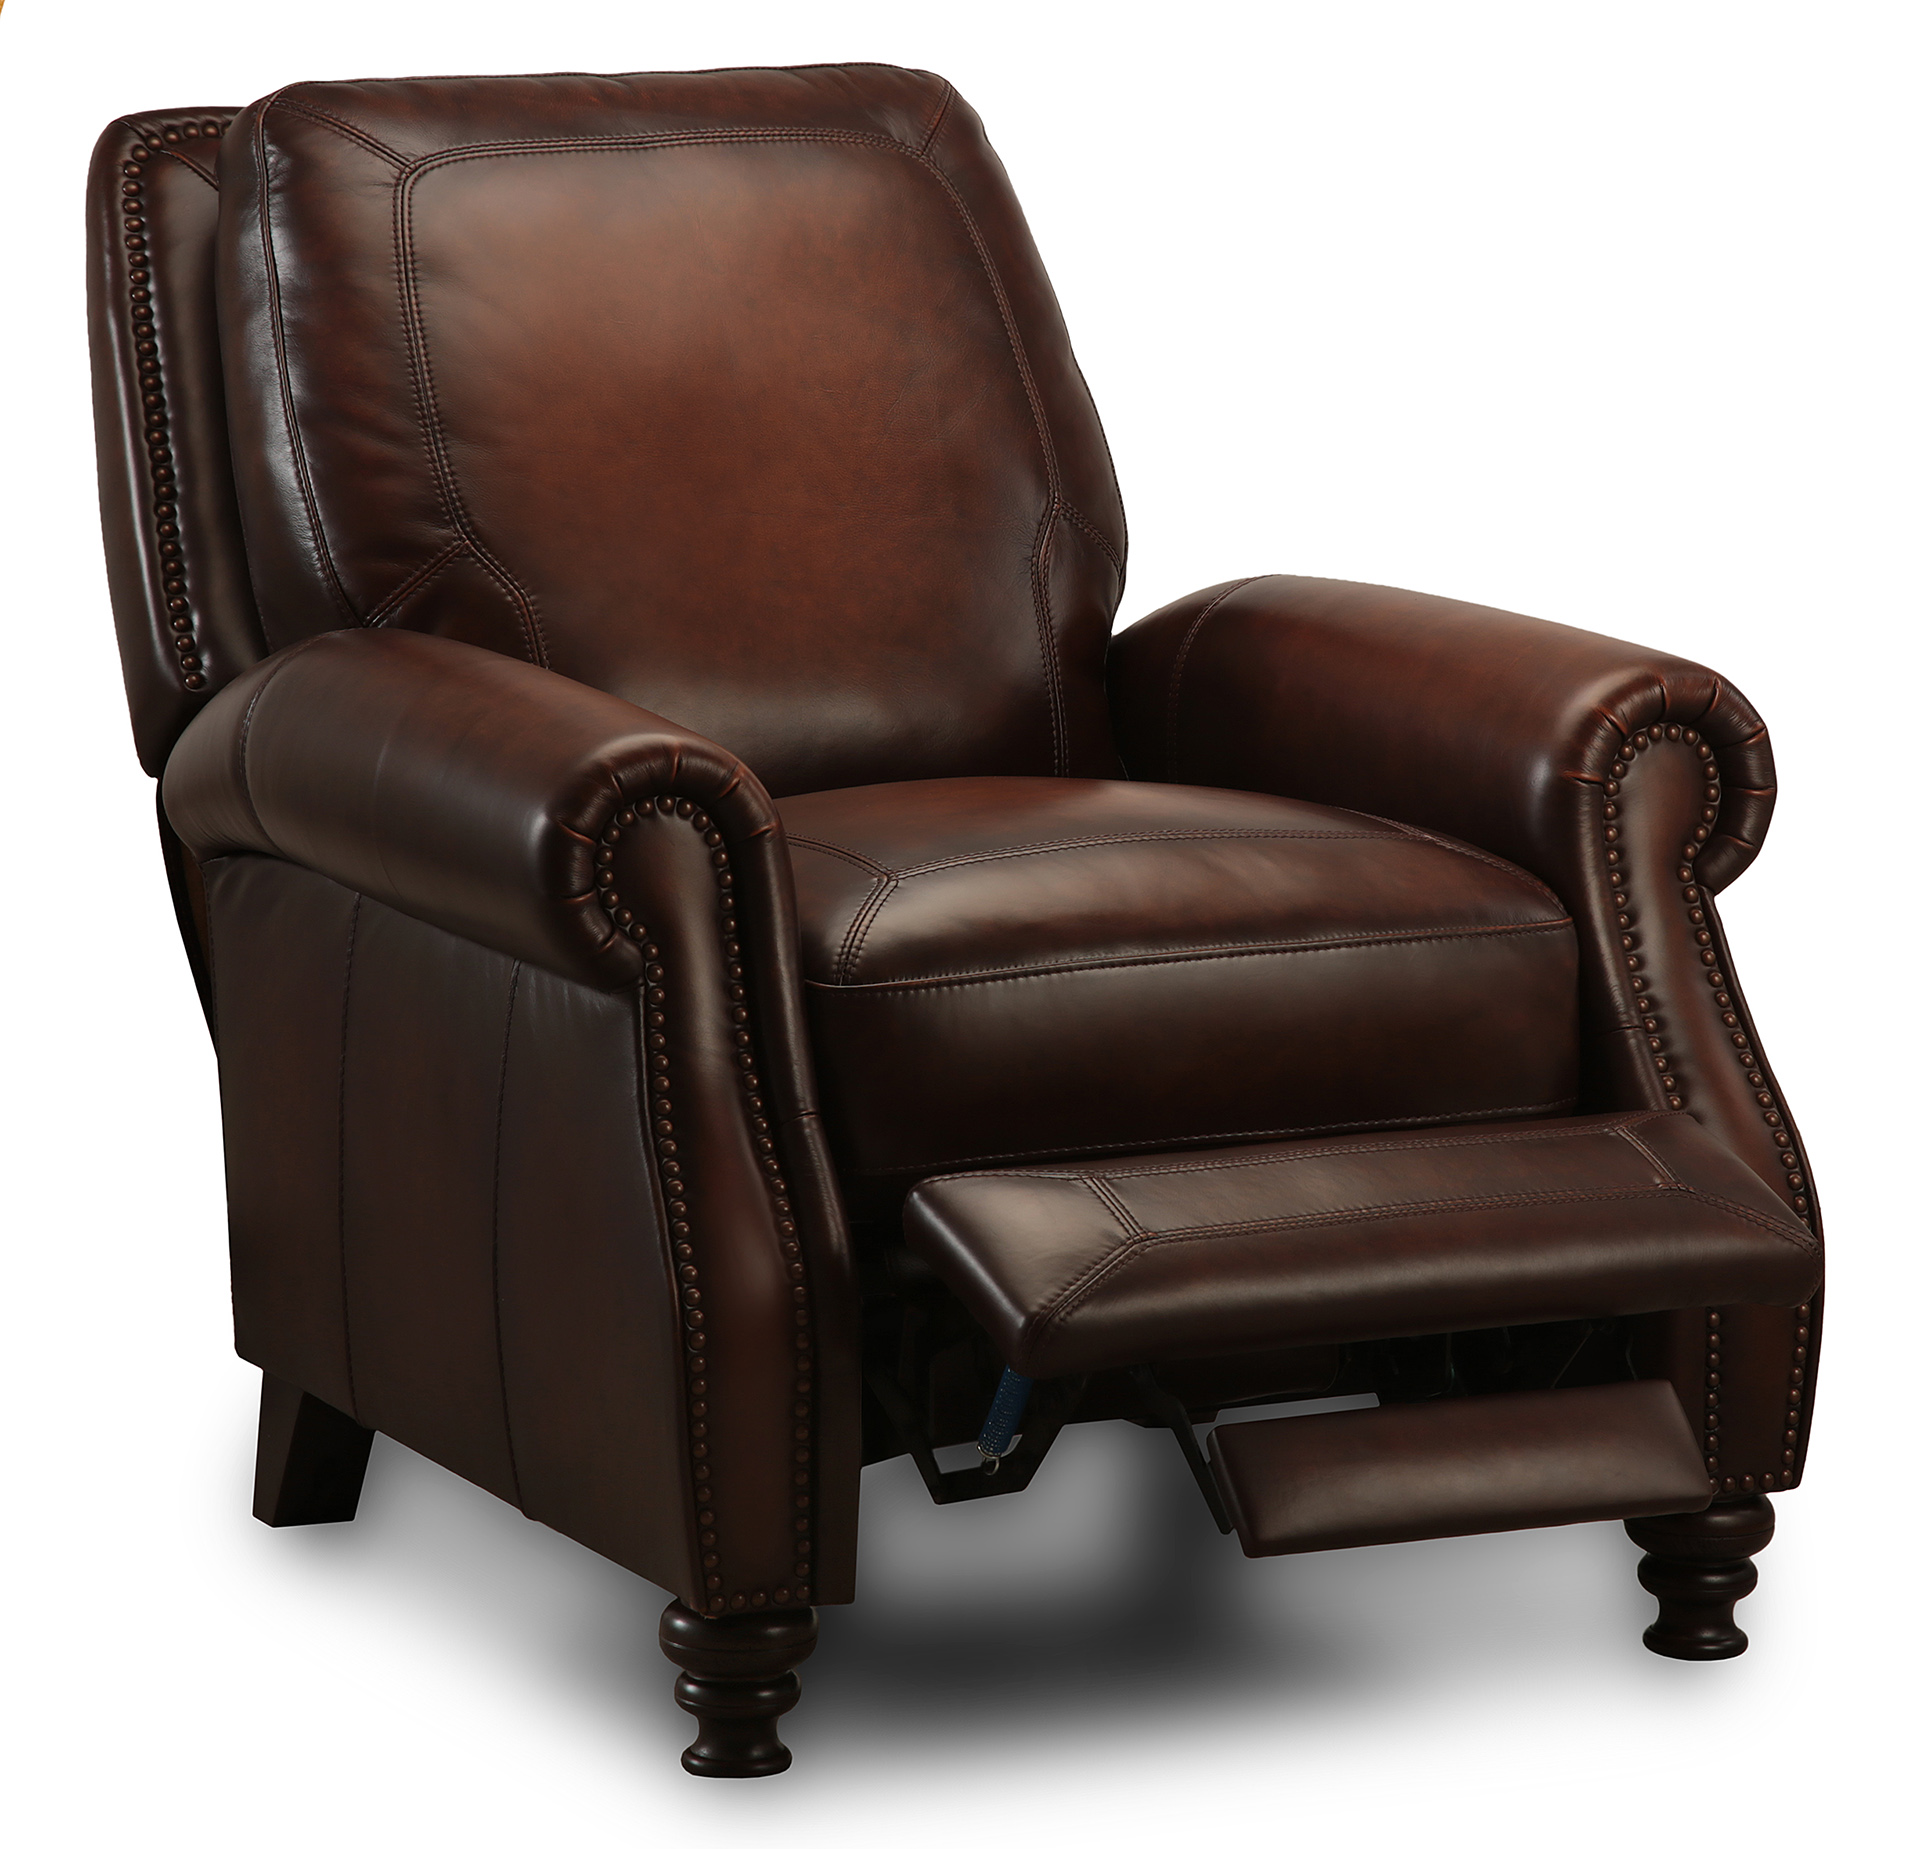 Ashland Press Back Recliner